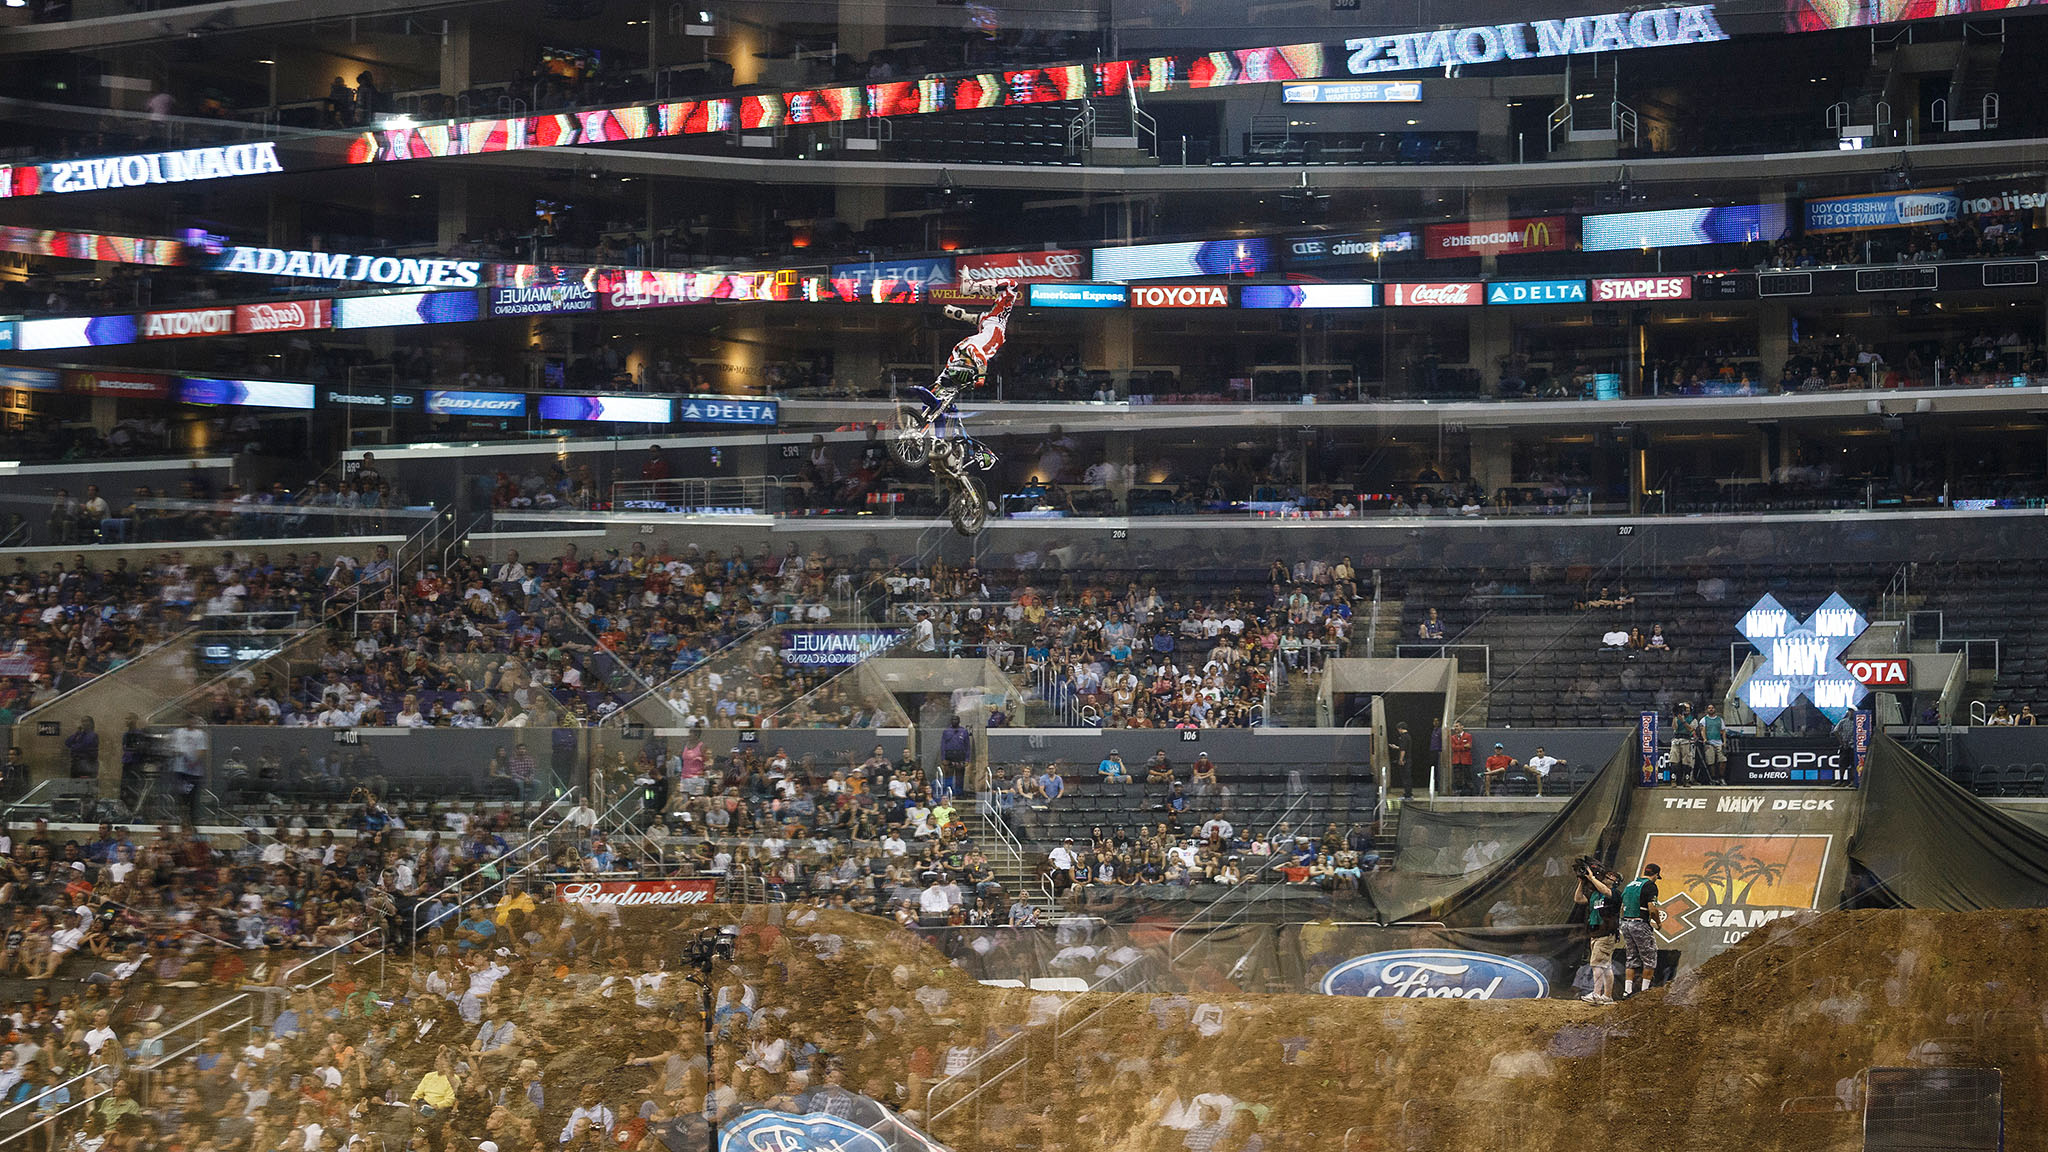 Adam Jones' 90.00 on his second run in Moto X Freestyle tied Taka Higashino for the best score of the night, but because of the tiebreaker, Jones would have to settle for silver. It was Jones' sixth X Games medal and fifth in Freestyle.